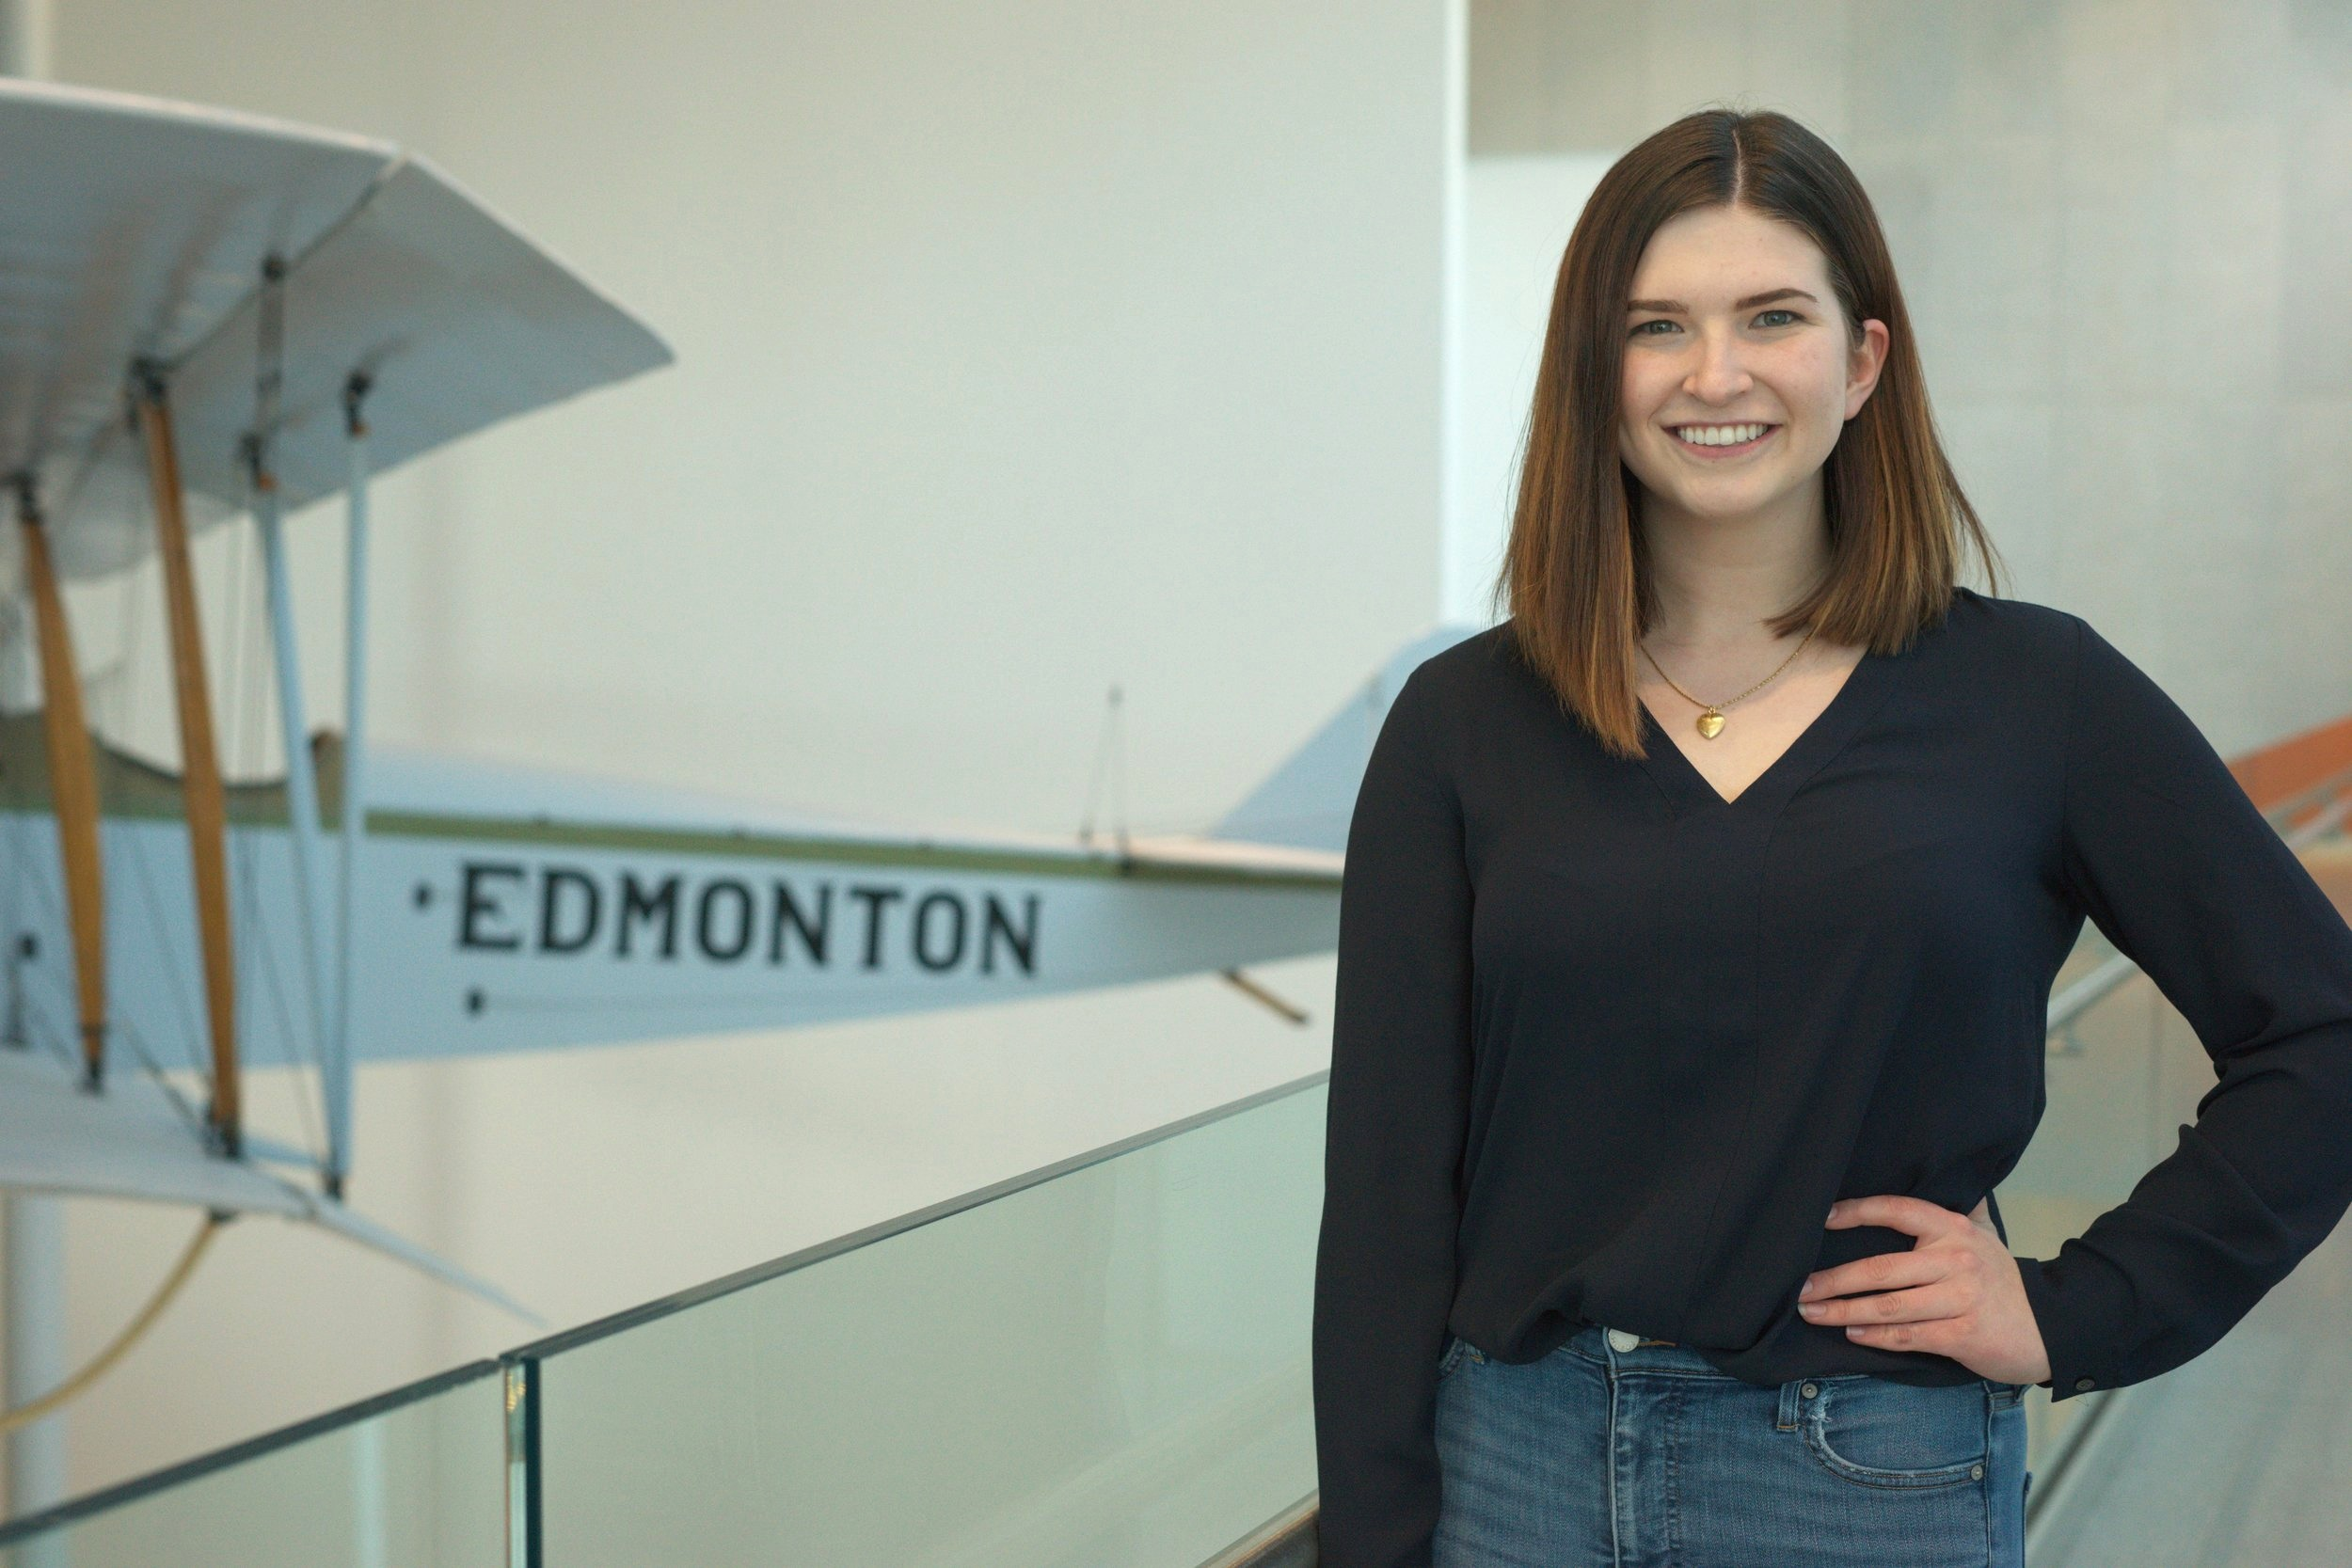 Emma Martin  Vice-President Delegate Relations  Hi everyone! I'm Emma and I'm in my final year of my Marketing degree at the Alberta School of Business. I was lucky enough to be part of AIBC 2018 as the logistics director and am thrilled to be back to fill the position of VP Delegate Relations this year. I am so excited to meet all of you and spend a week together in the beautiful town of Jasper. A fun fact about me is that I can warm up my hands with the power of my mind (a useful trick when you live in Edmonton, Alberta).